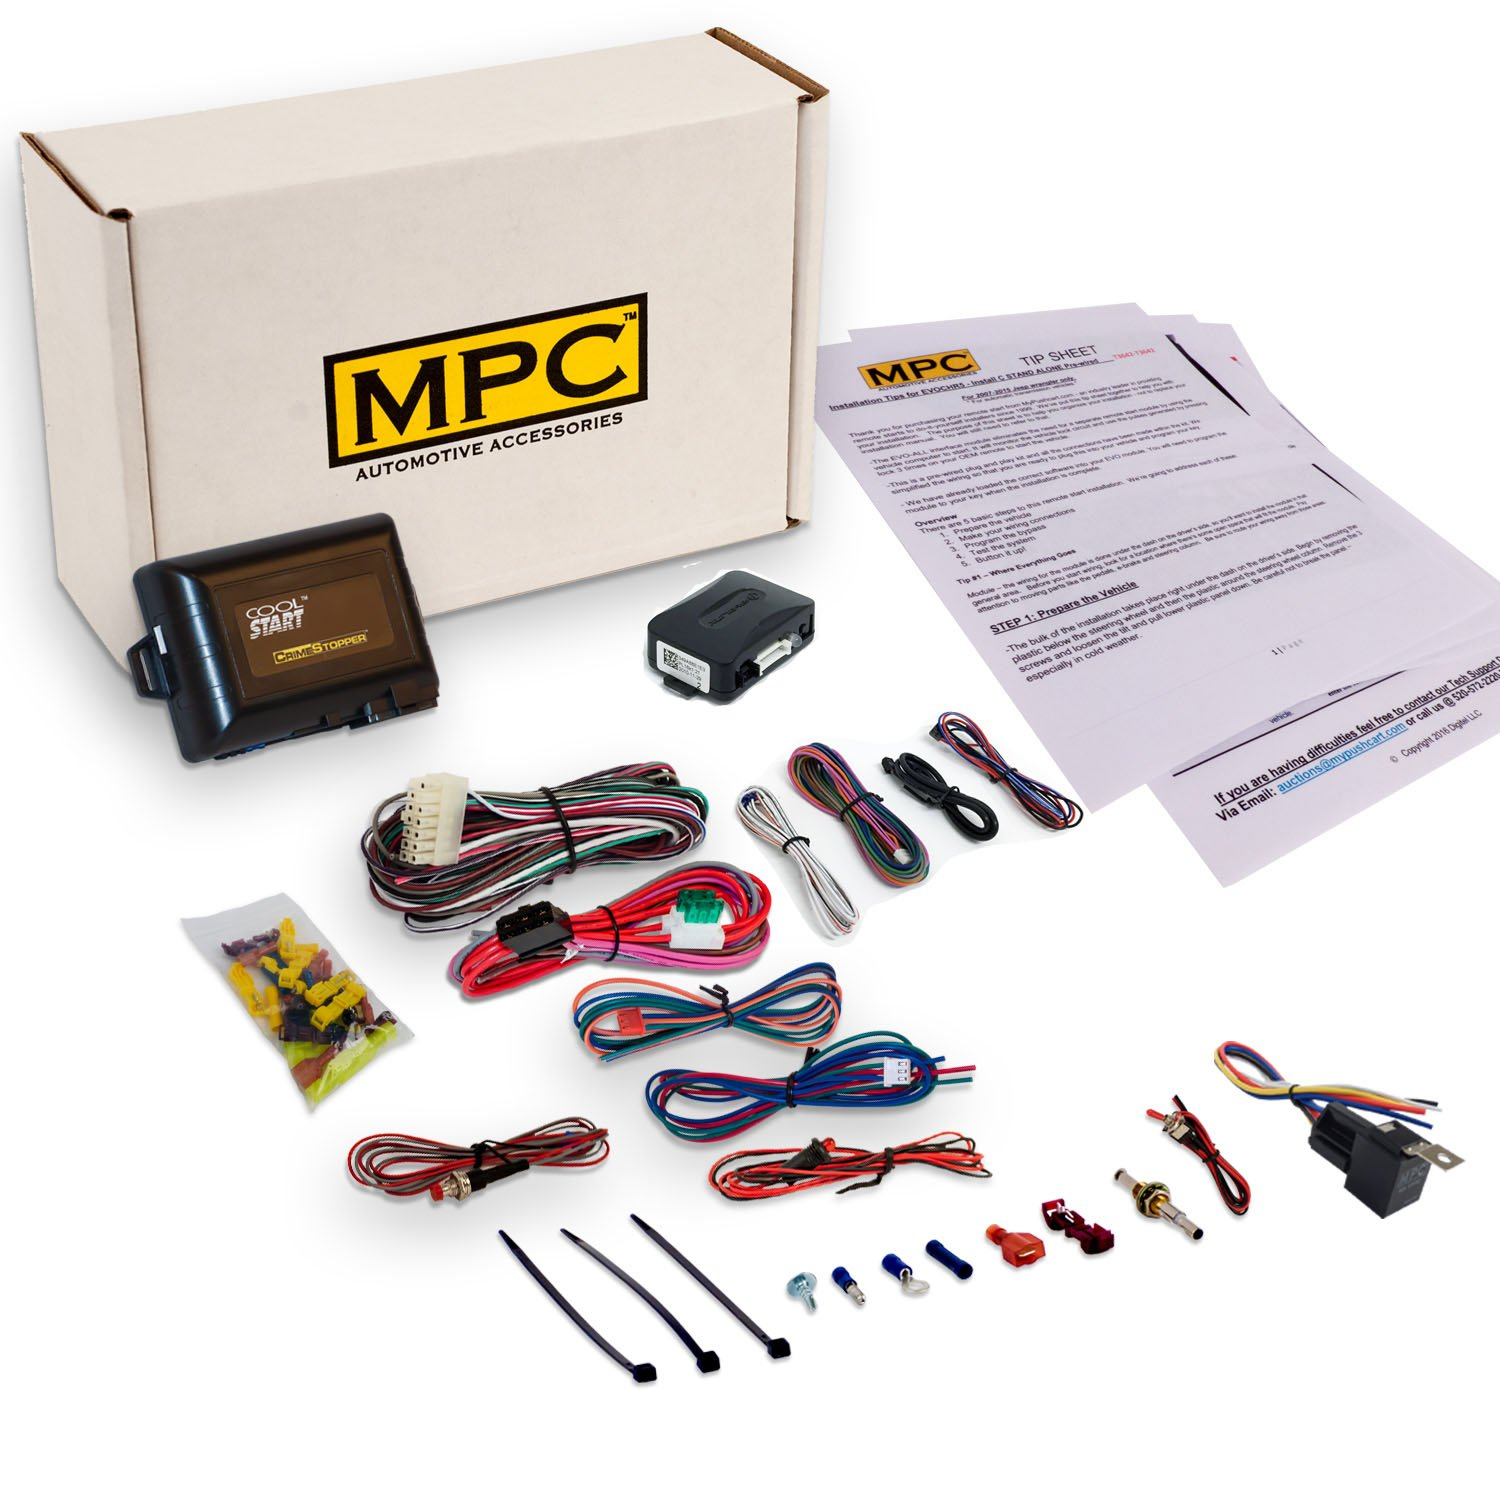 Mpc Complete Remote Start Kit For Select Gm Vehicles 2003 Gmc Yukon Denali Wiring Harness 1998 2007 Chevrolet Pontiac Use Your Oem Key Fobs Automotive